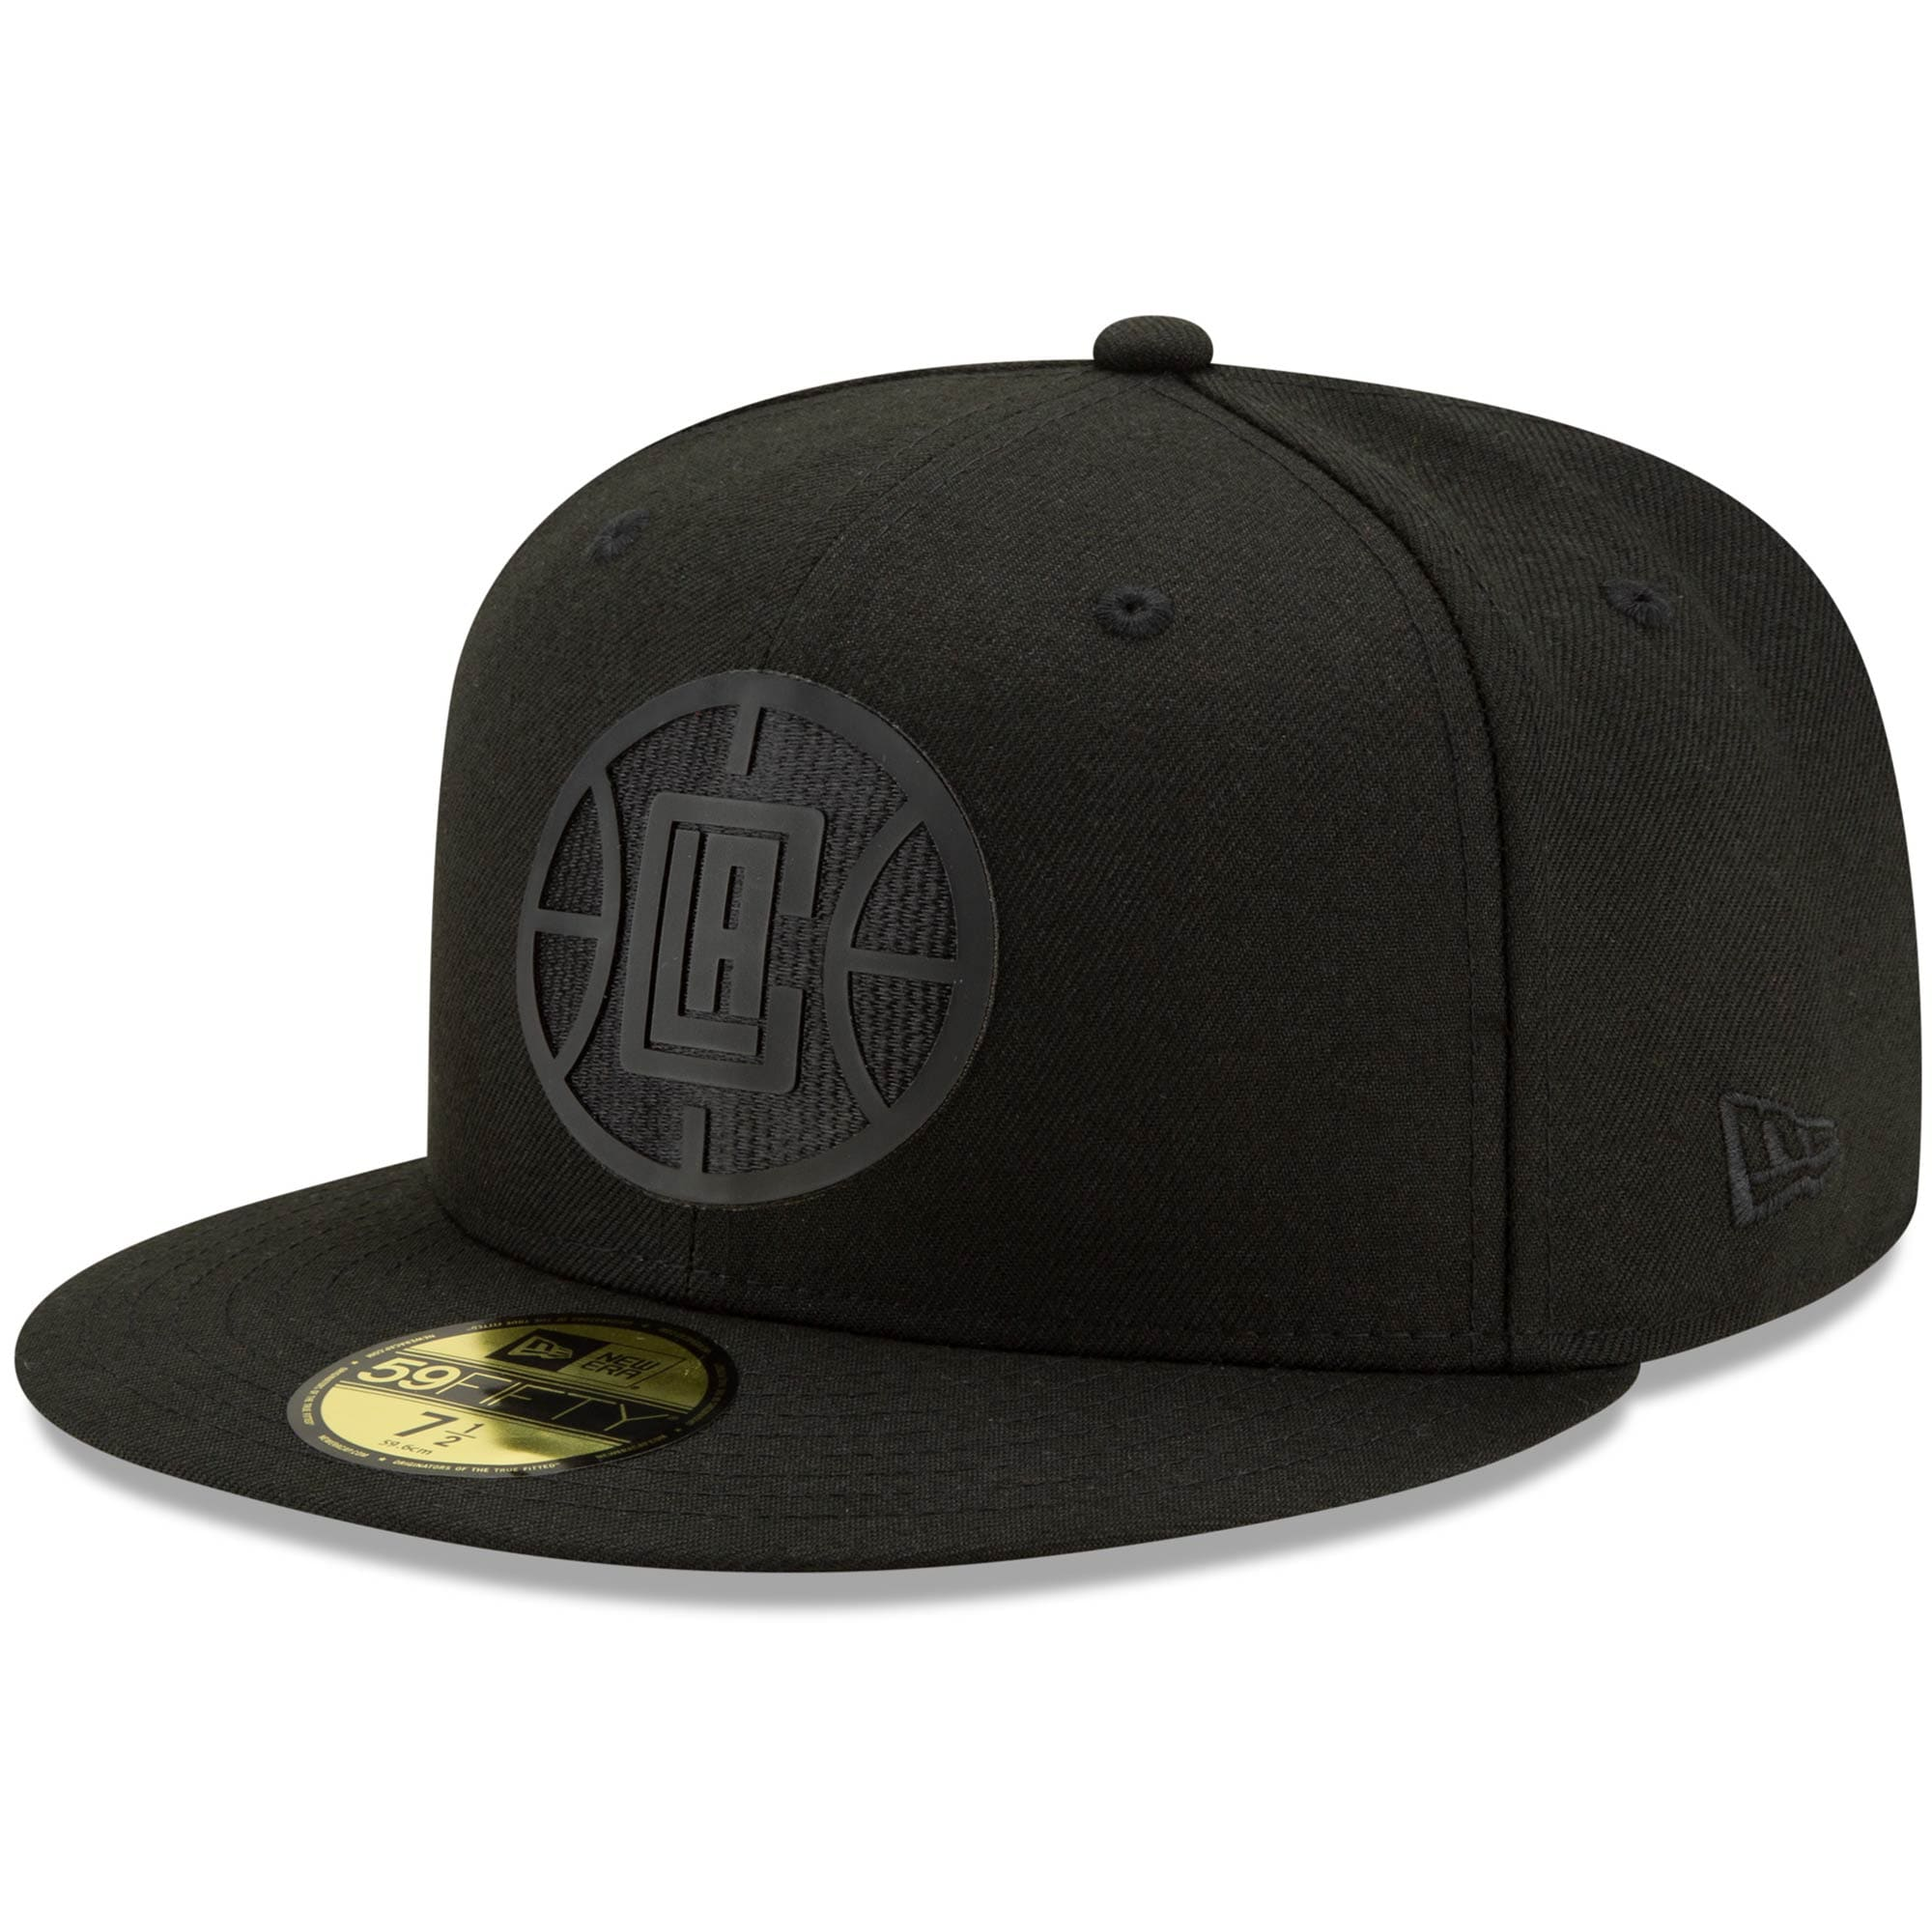 LA Clippers New Era Back Half 59FIFTY Fitted Hat - Black